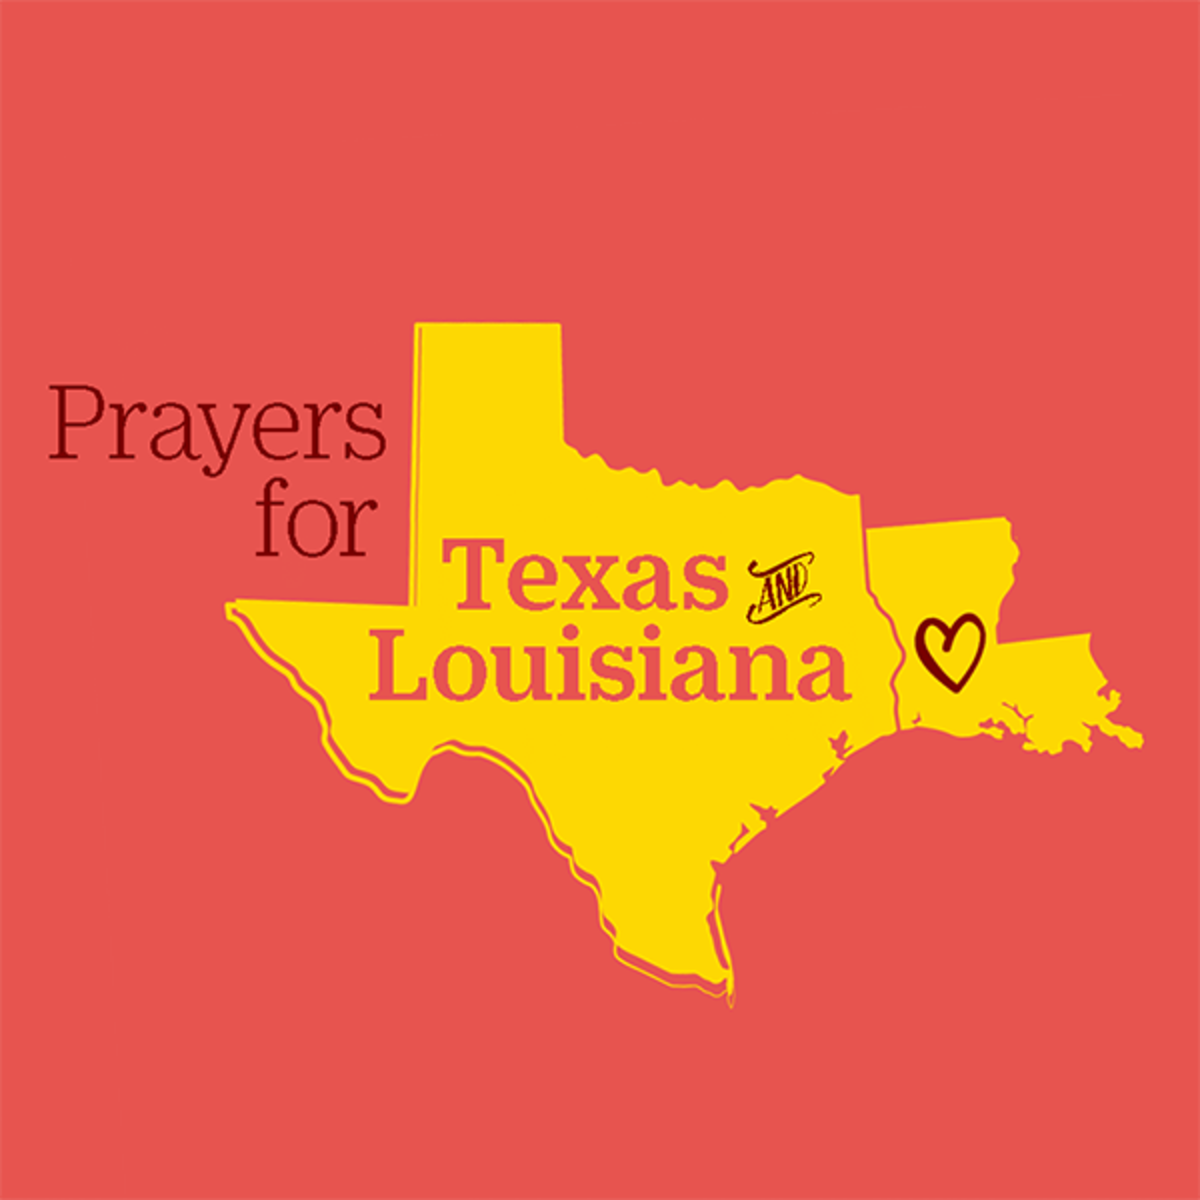 Prayers for Texas and Louisiana